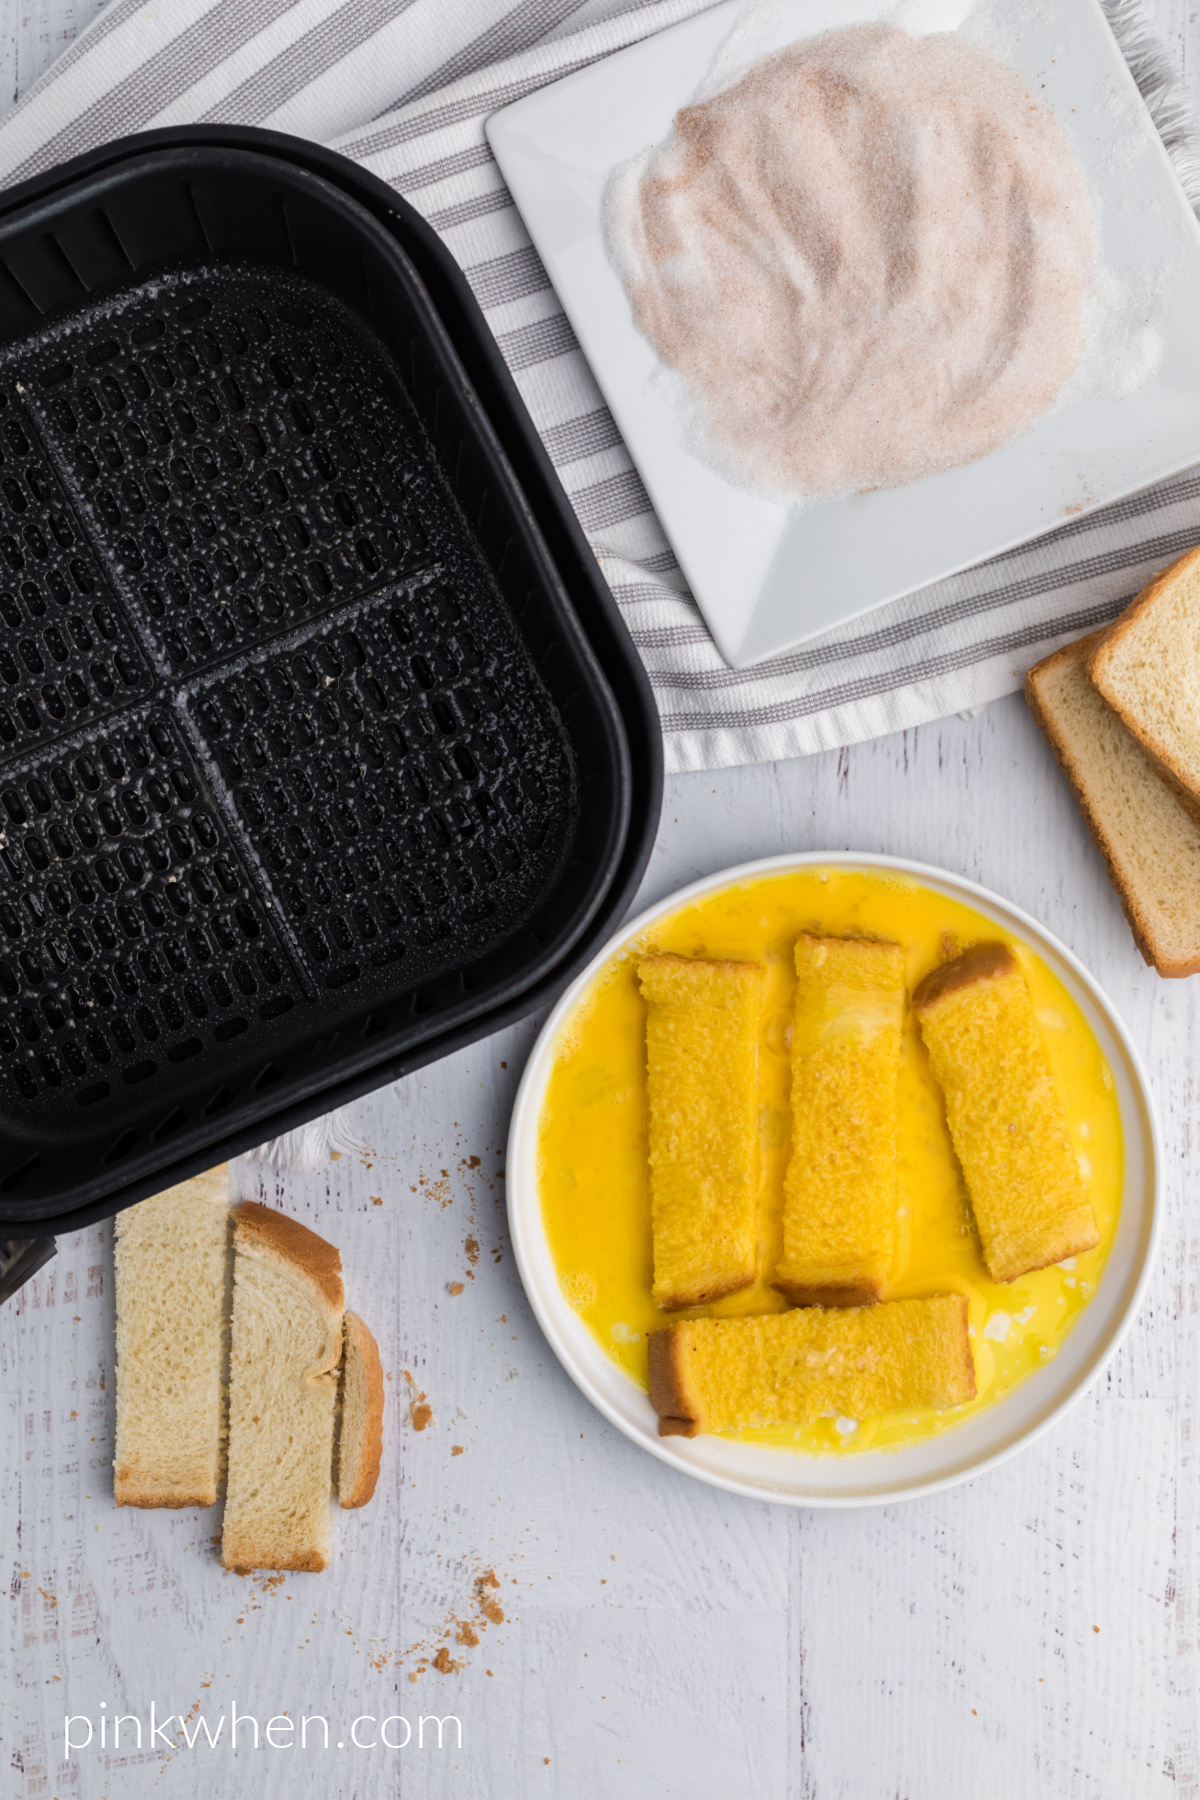 French toast sticks dipped into egg before being added to cinnamon and sugar mixture and placed into the air fryer.